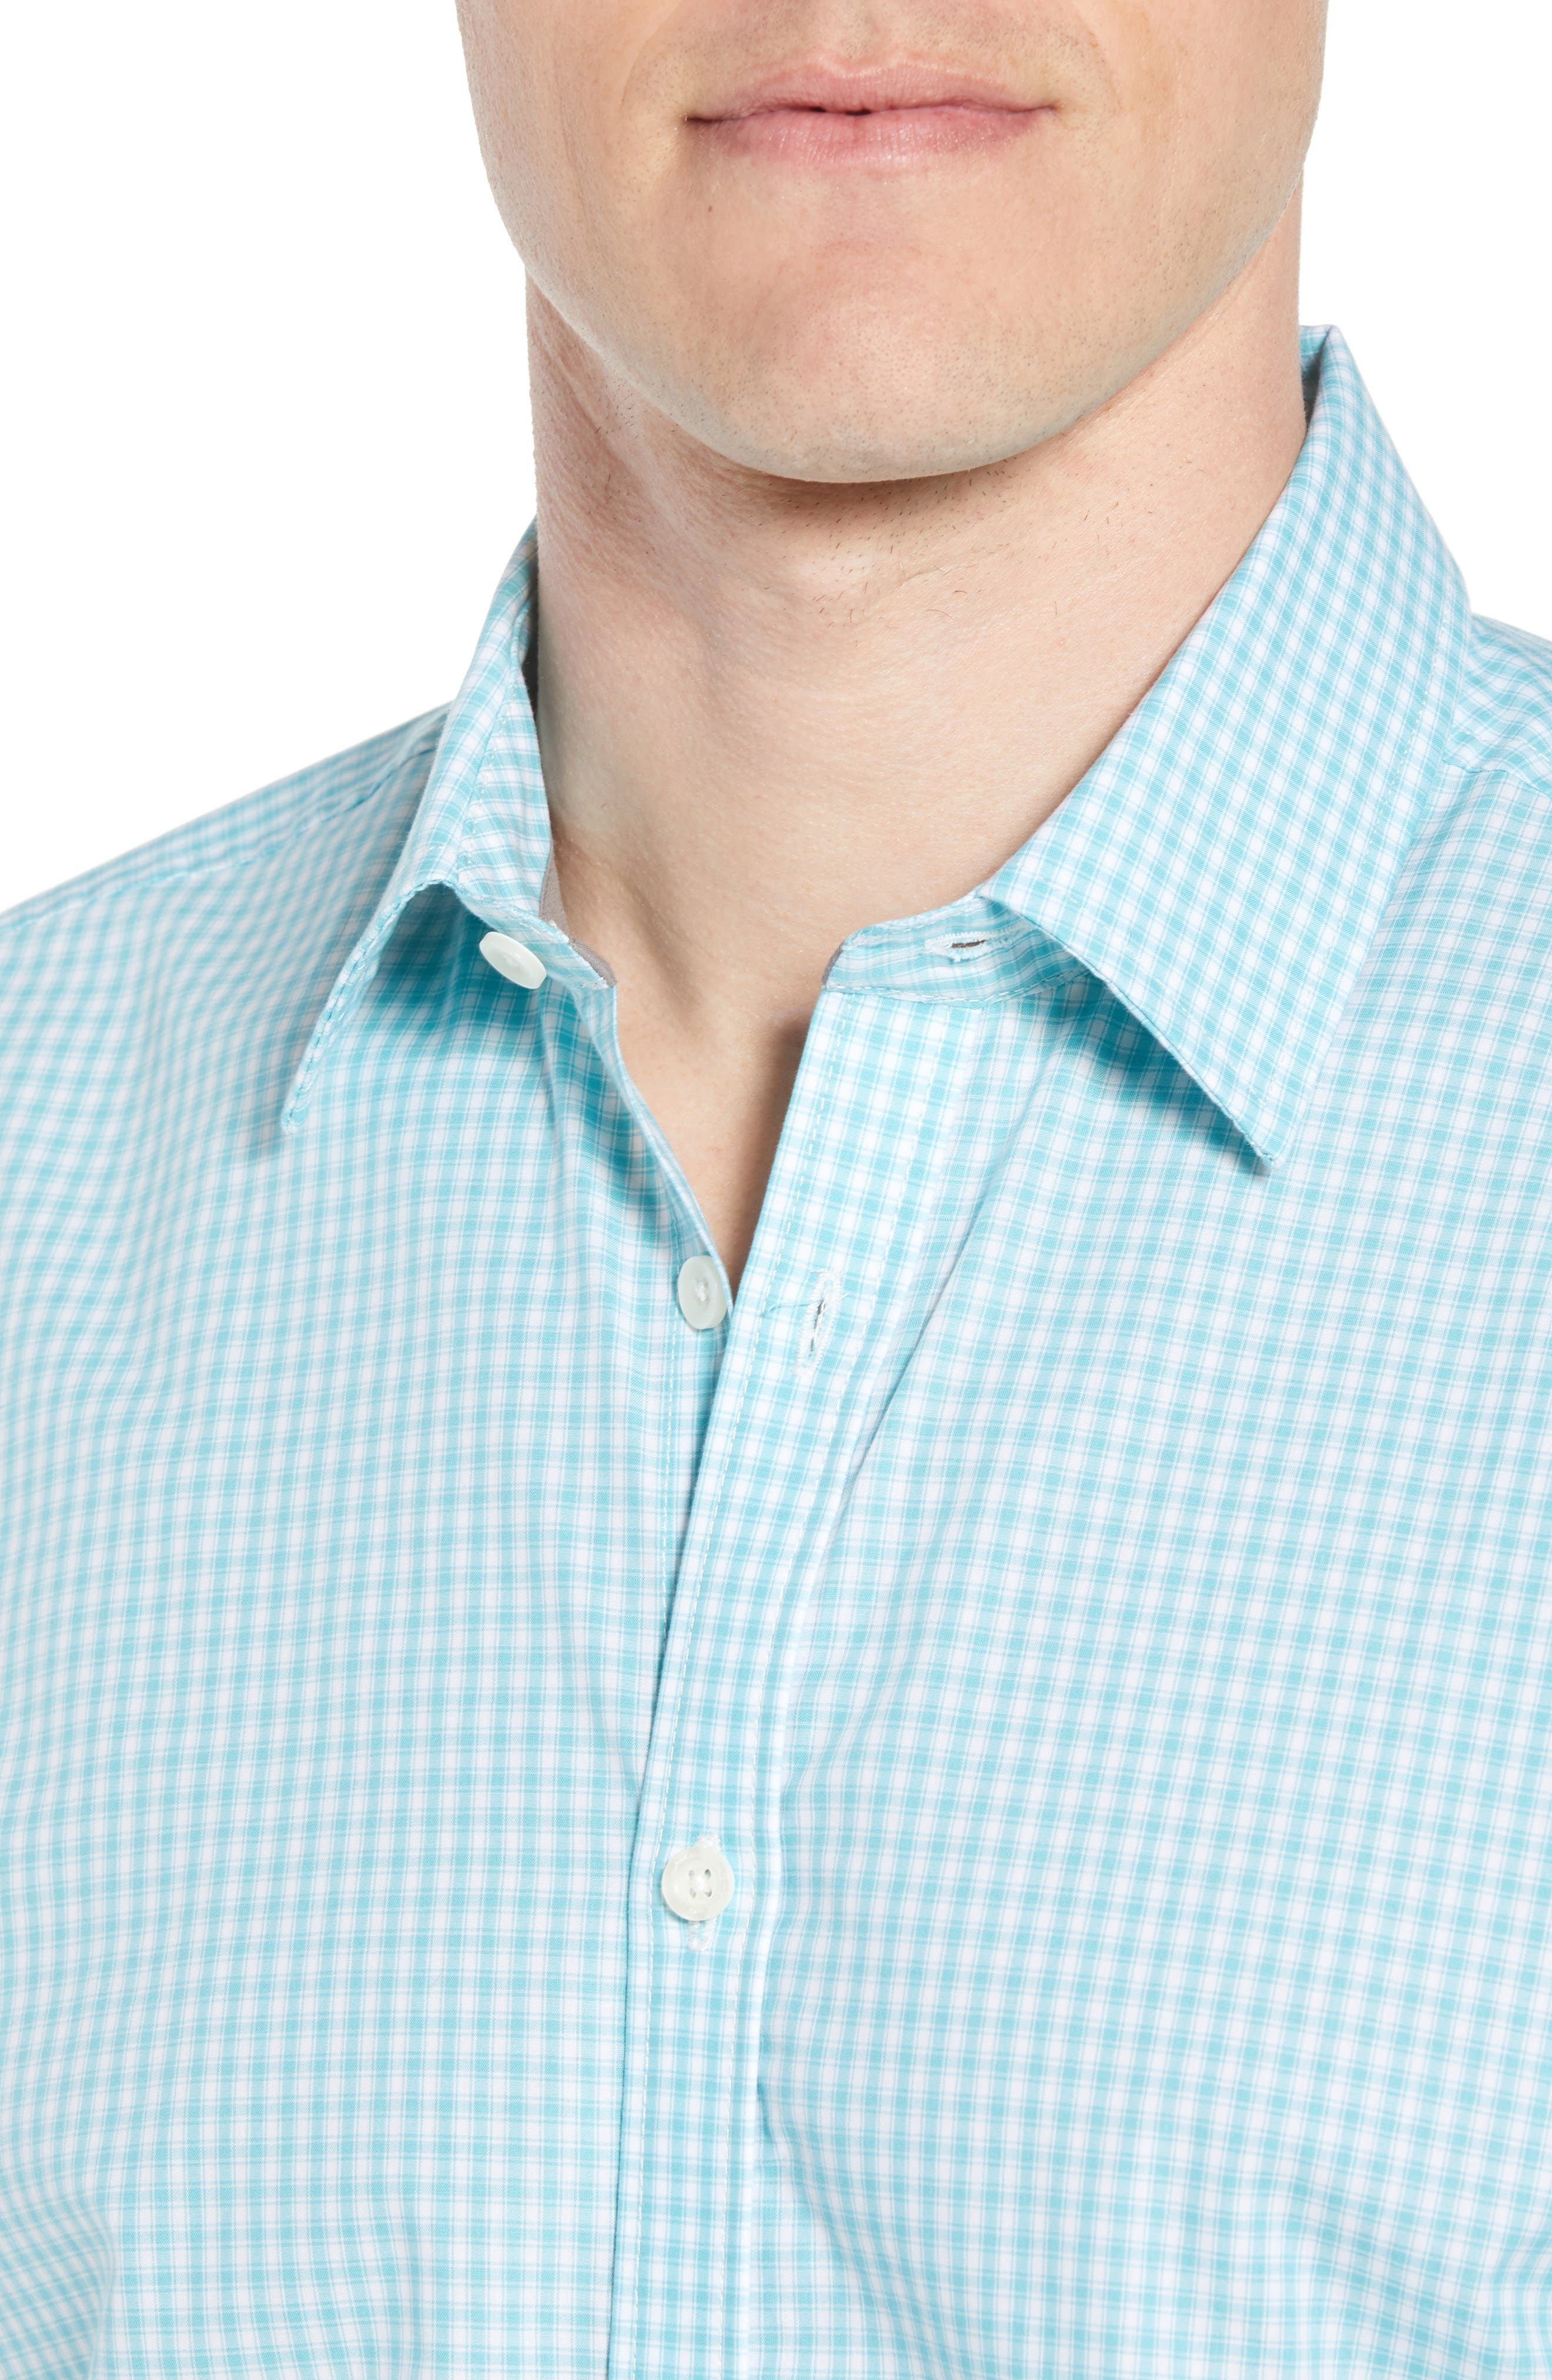 Comfort Fit Check Sport Shirt,                             Alternate thumbnail 2, color,                             Turquoise